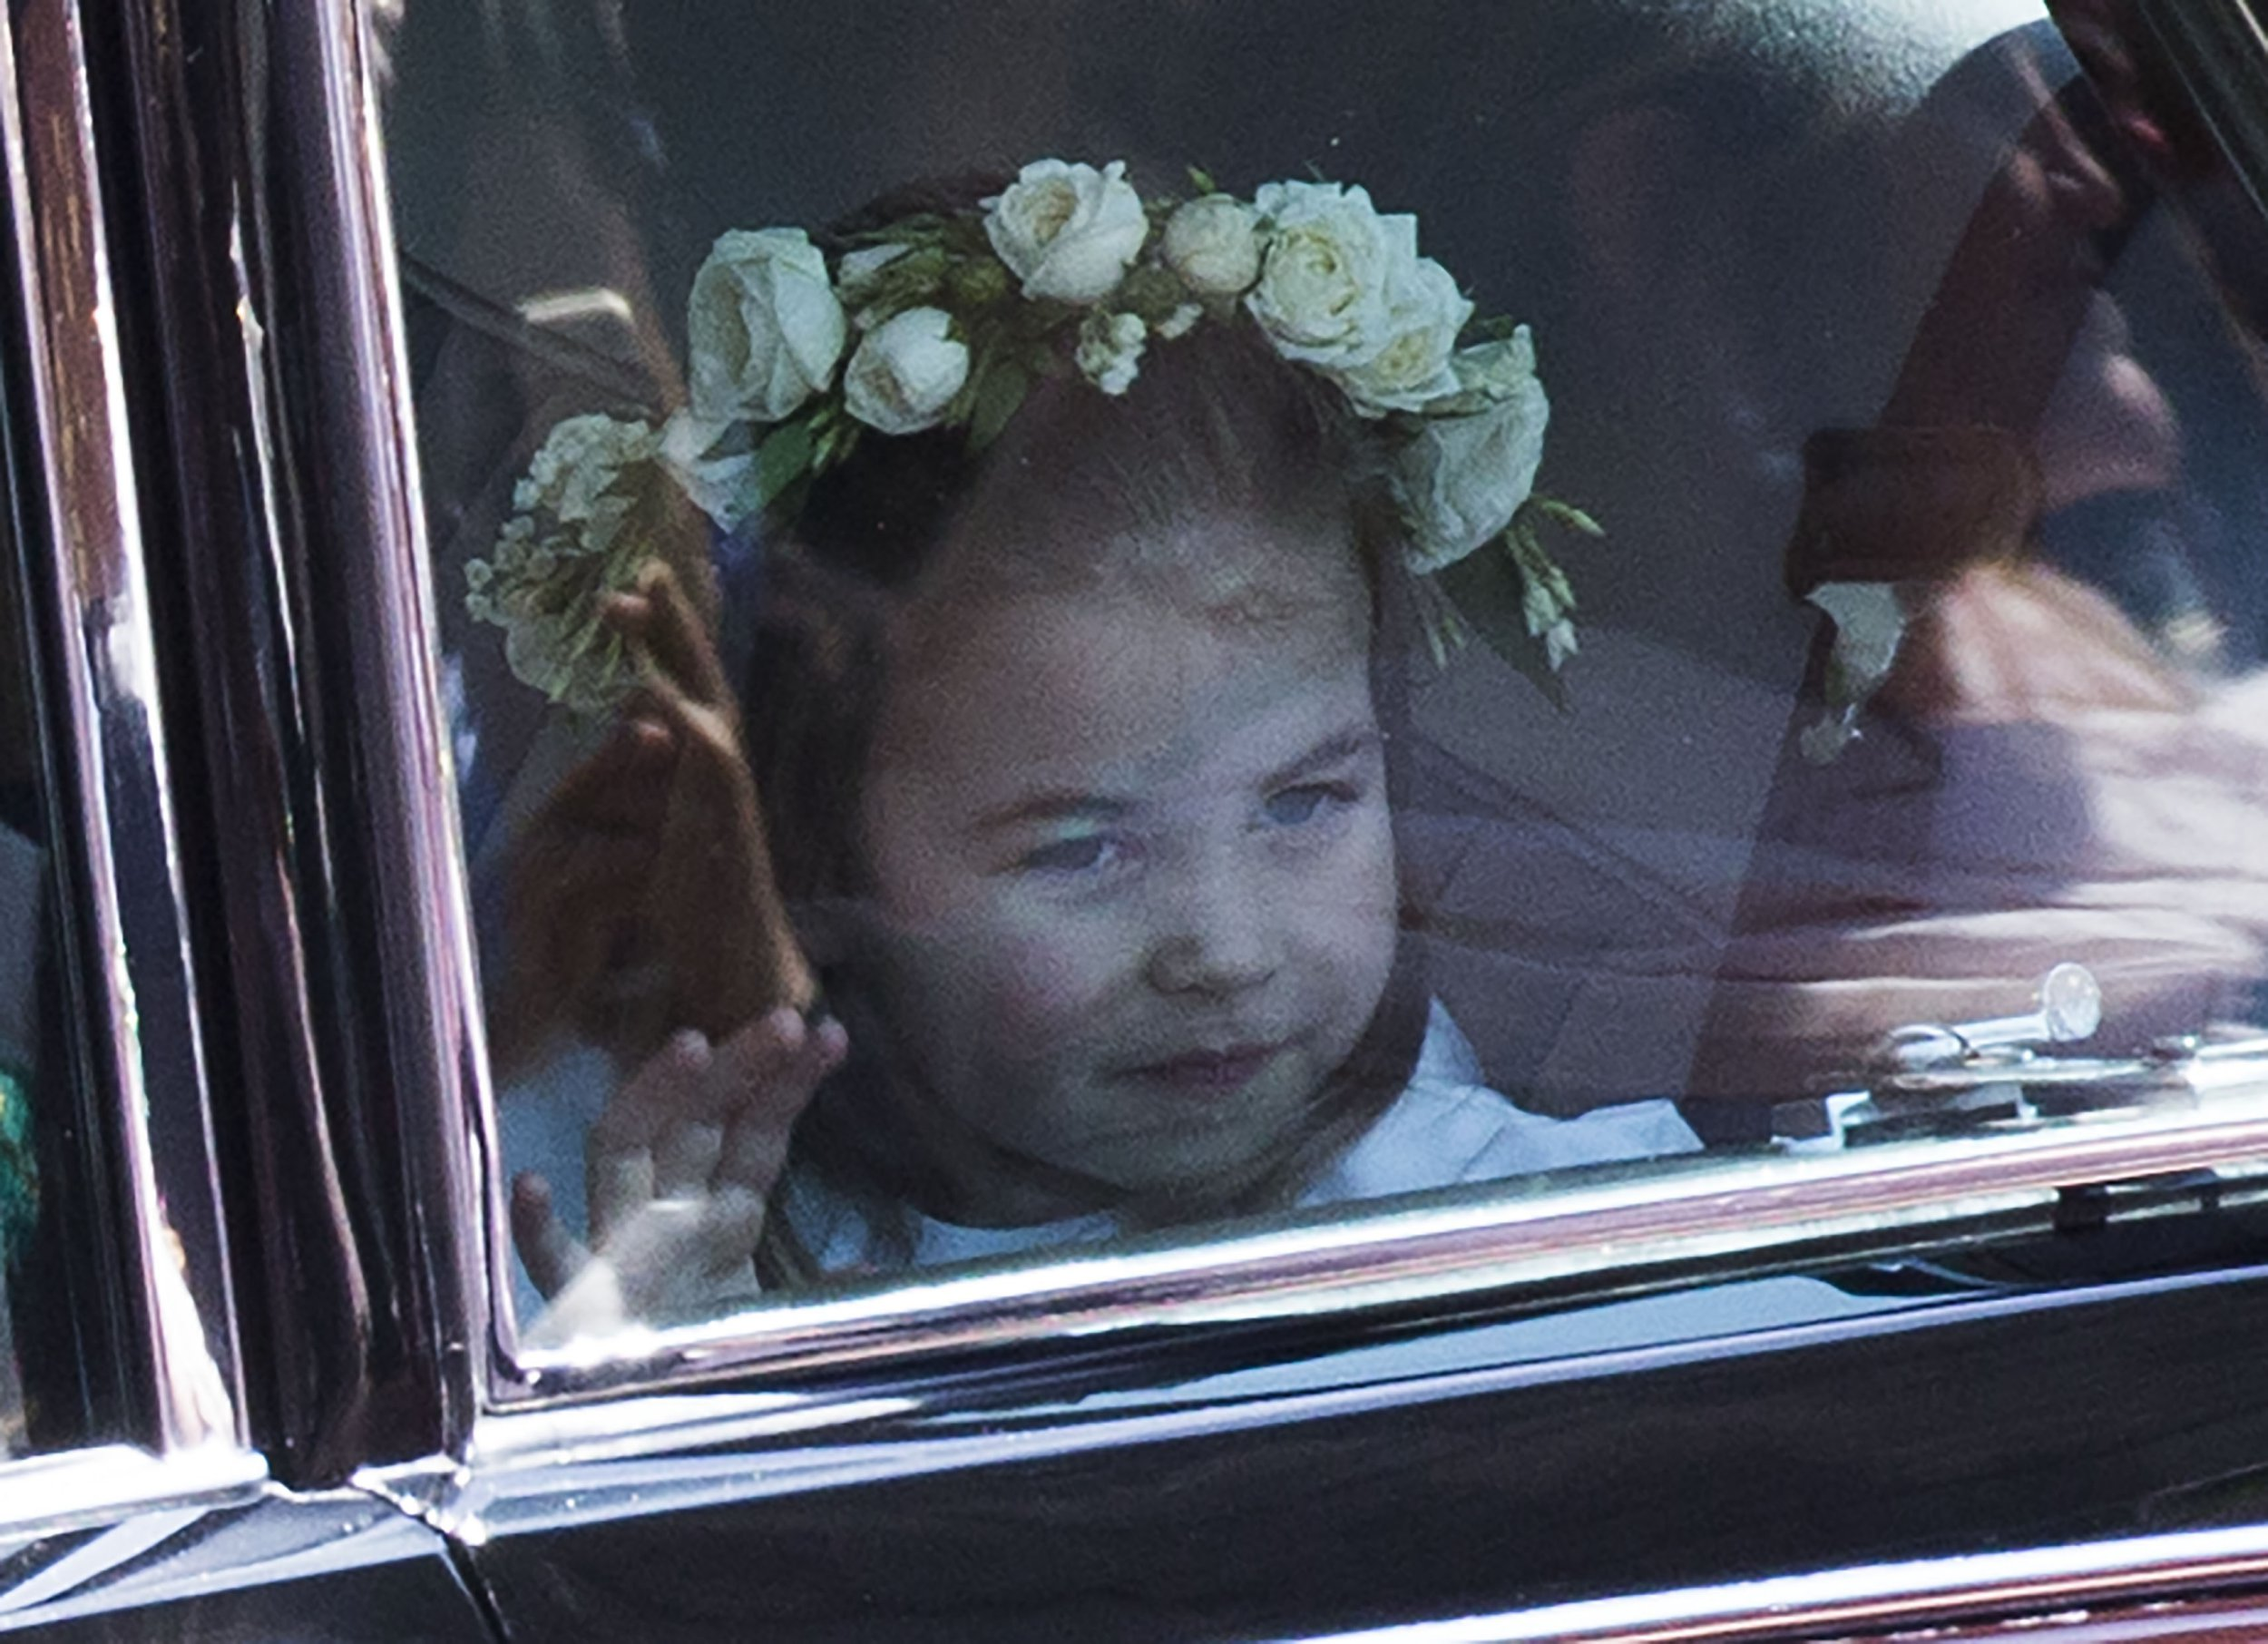 Prince George and Princess Charlotte look adorable as they arrive for royal wedding